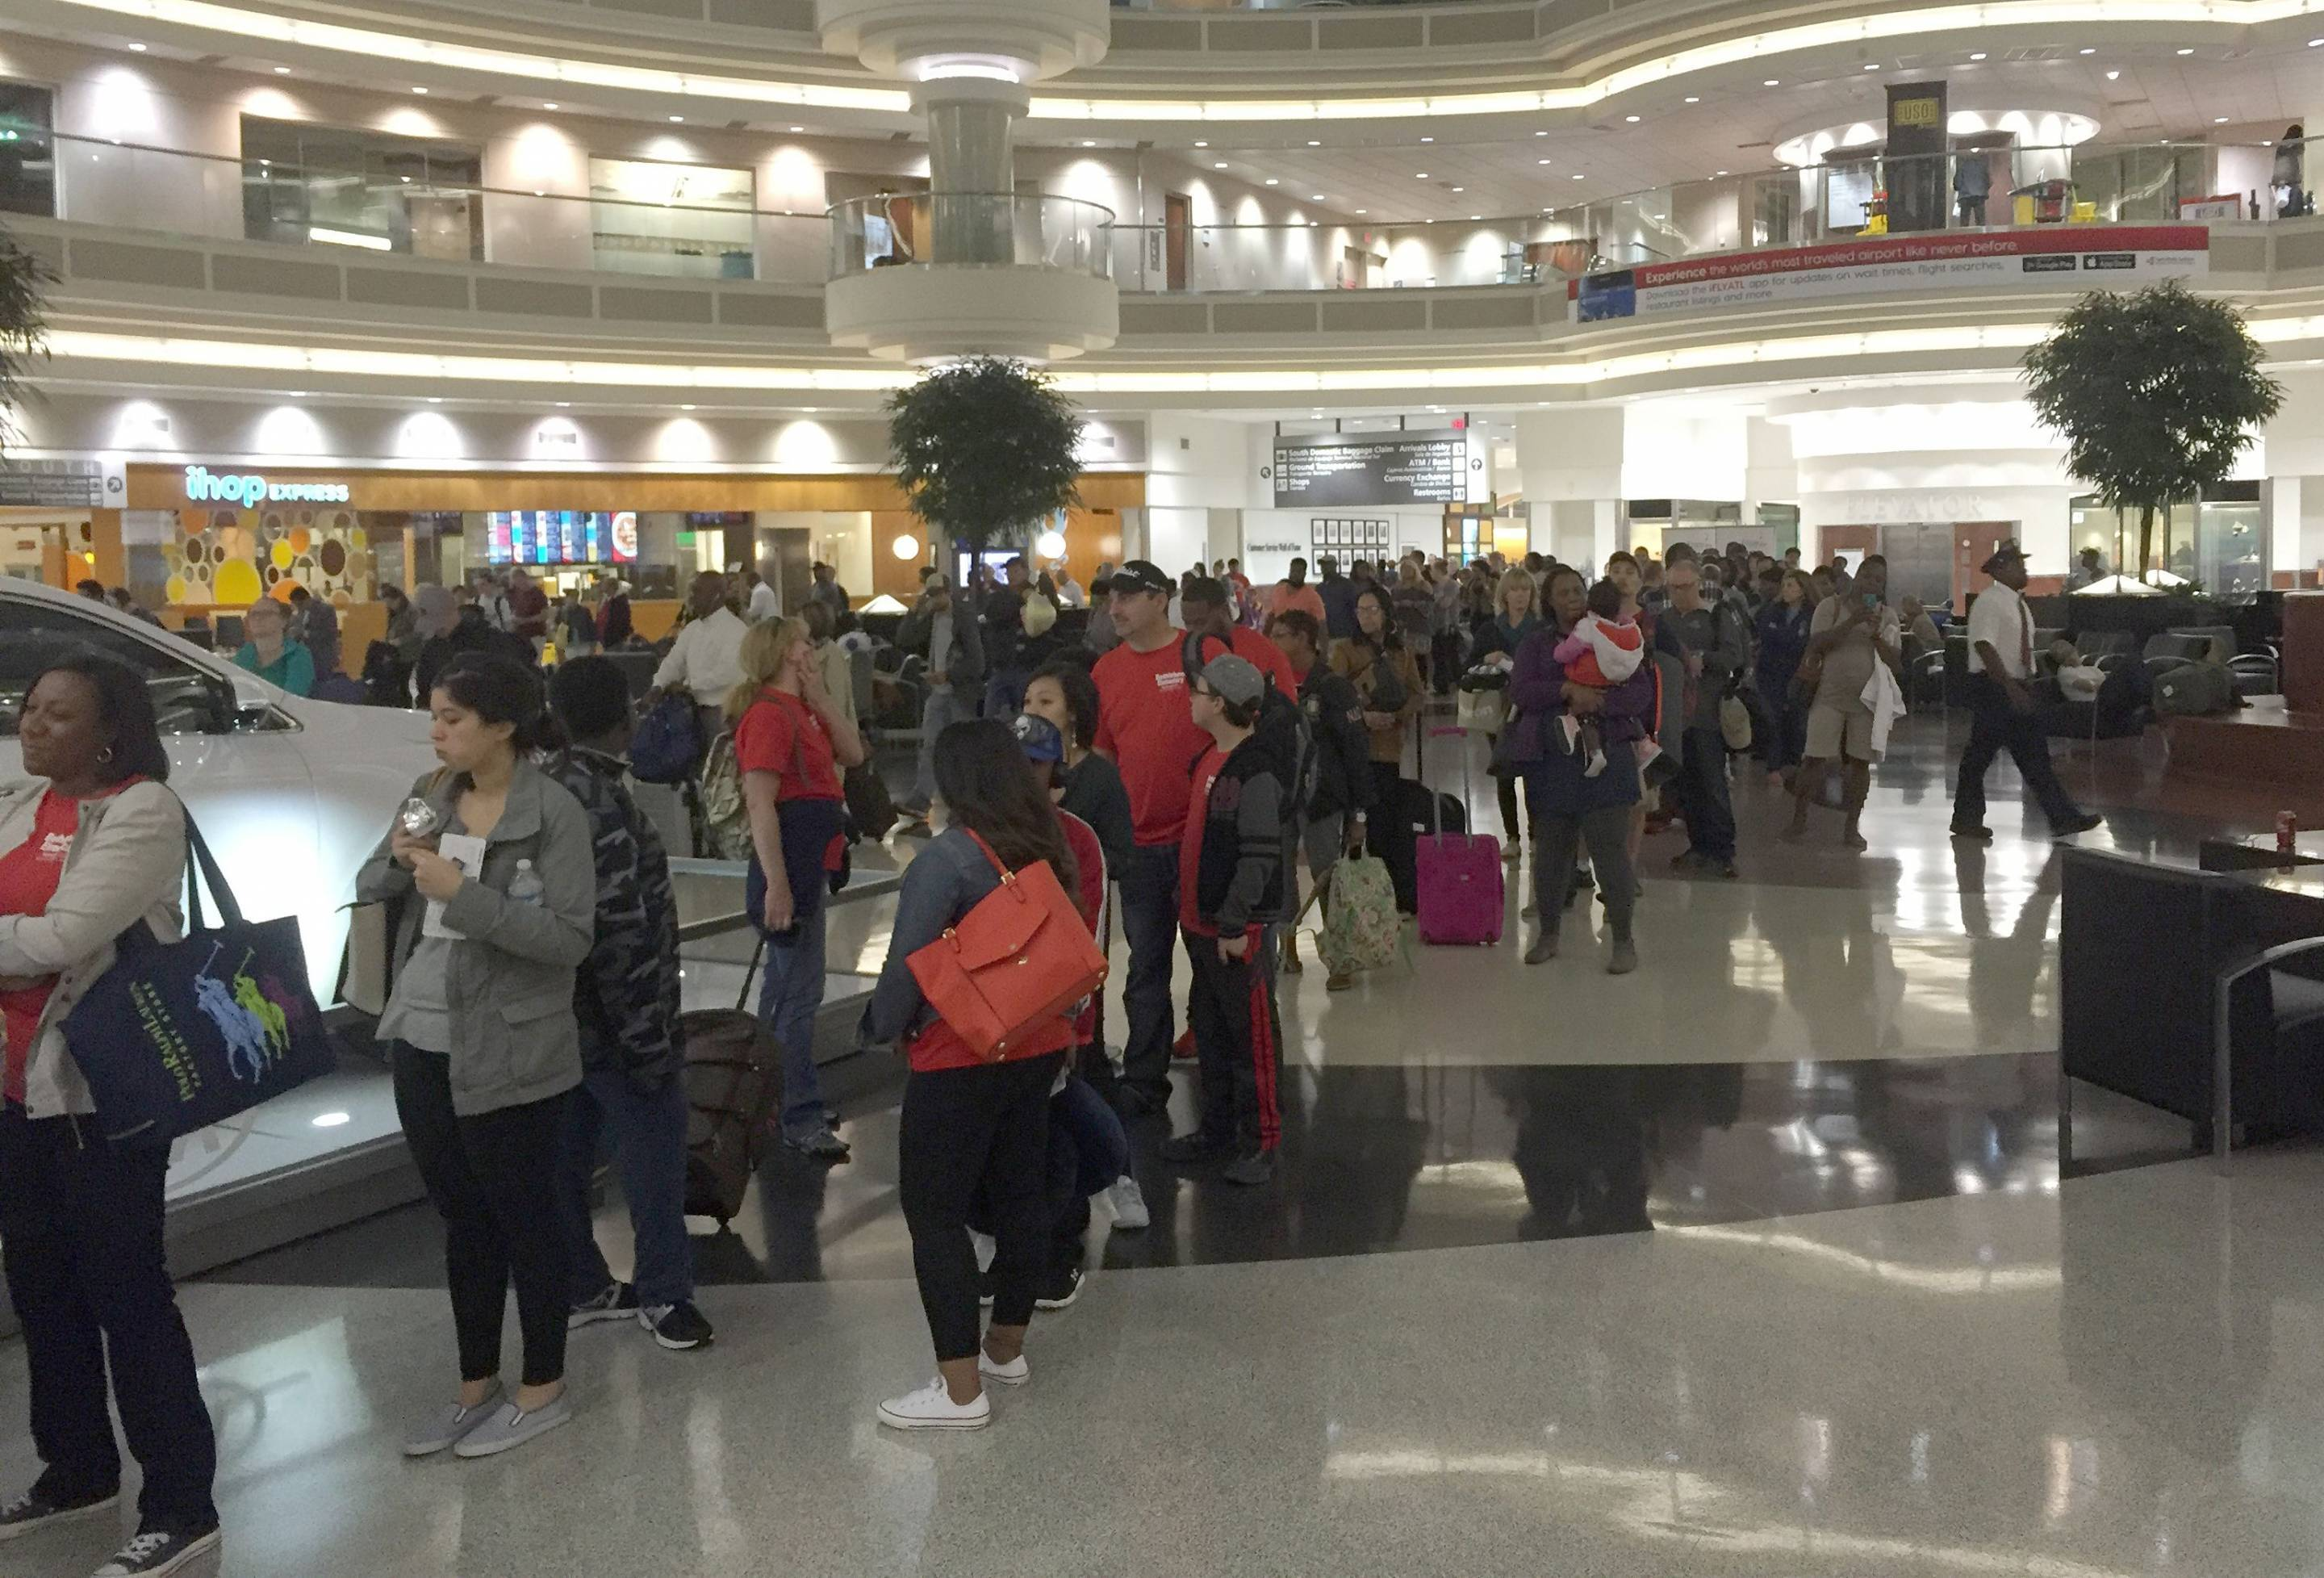 Government Shutdown Creating a Travel Nightmare At Atlanta's Airport